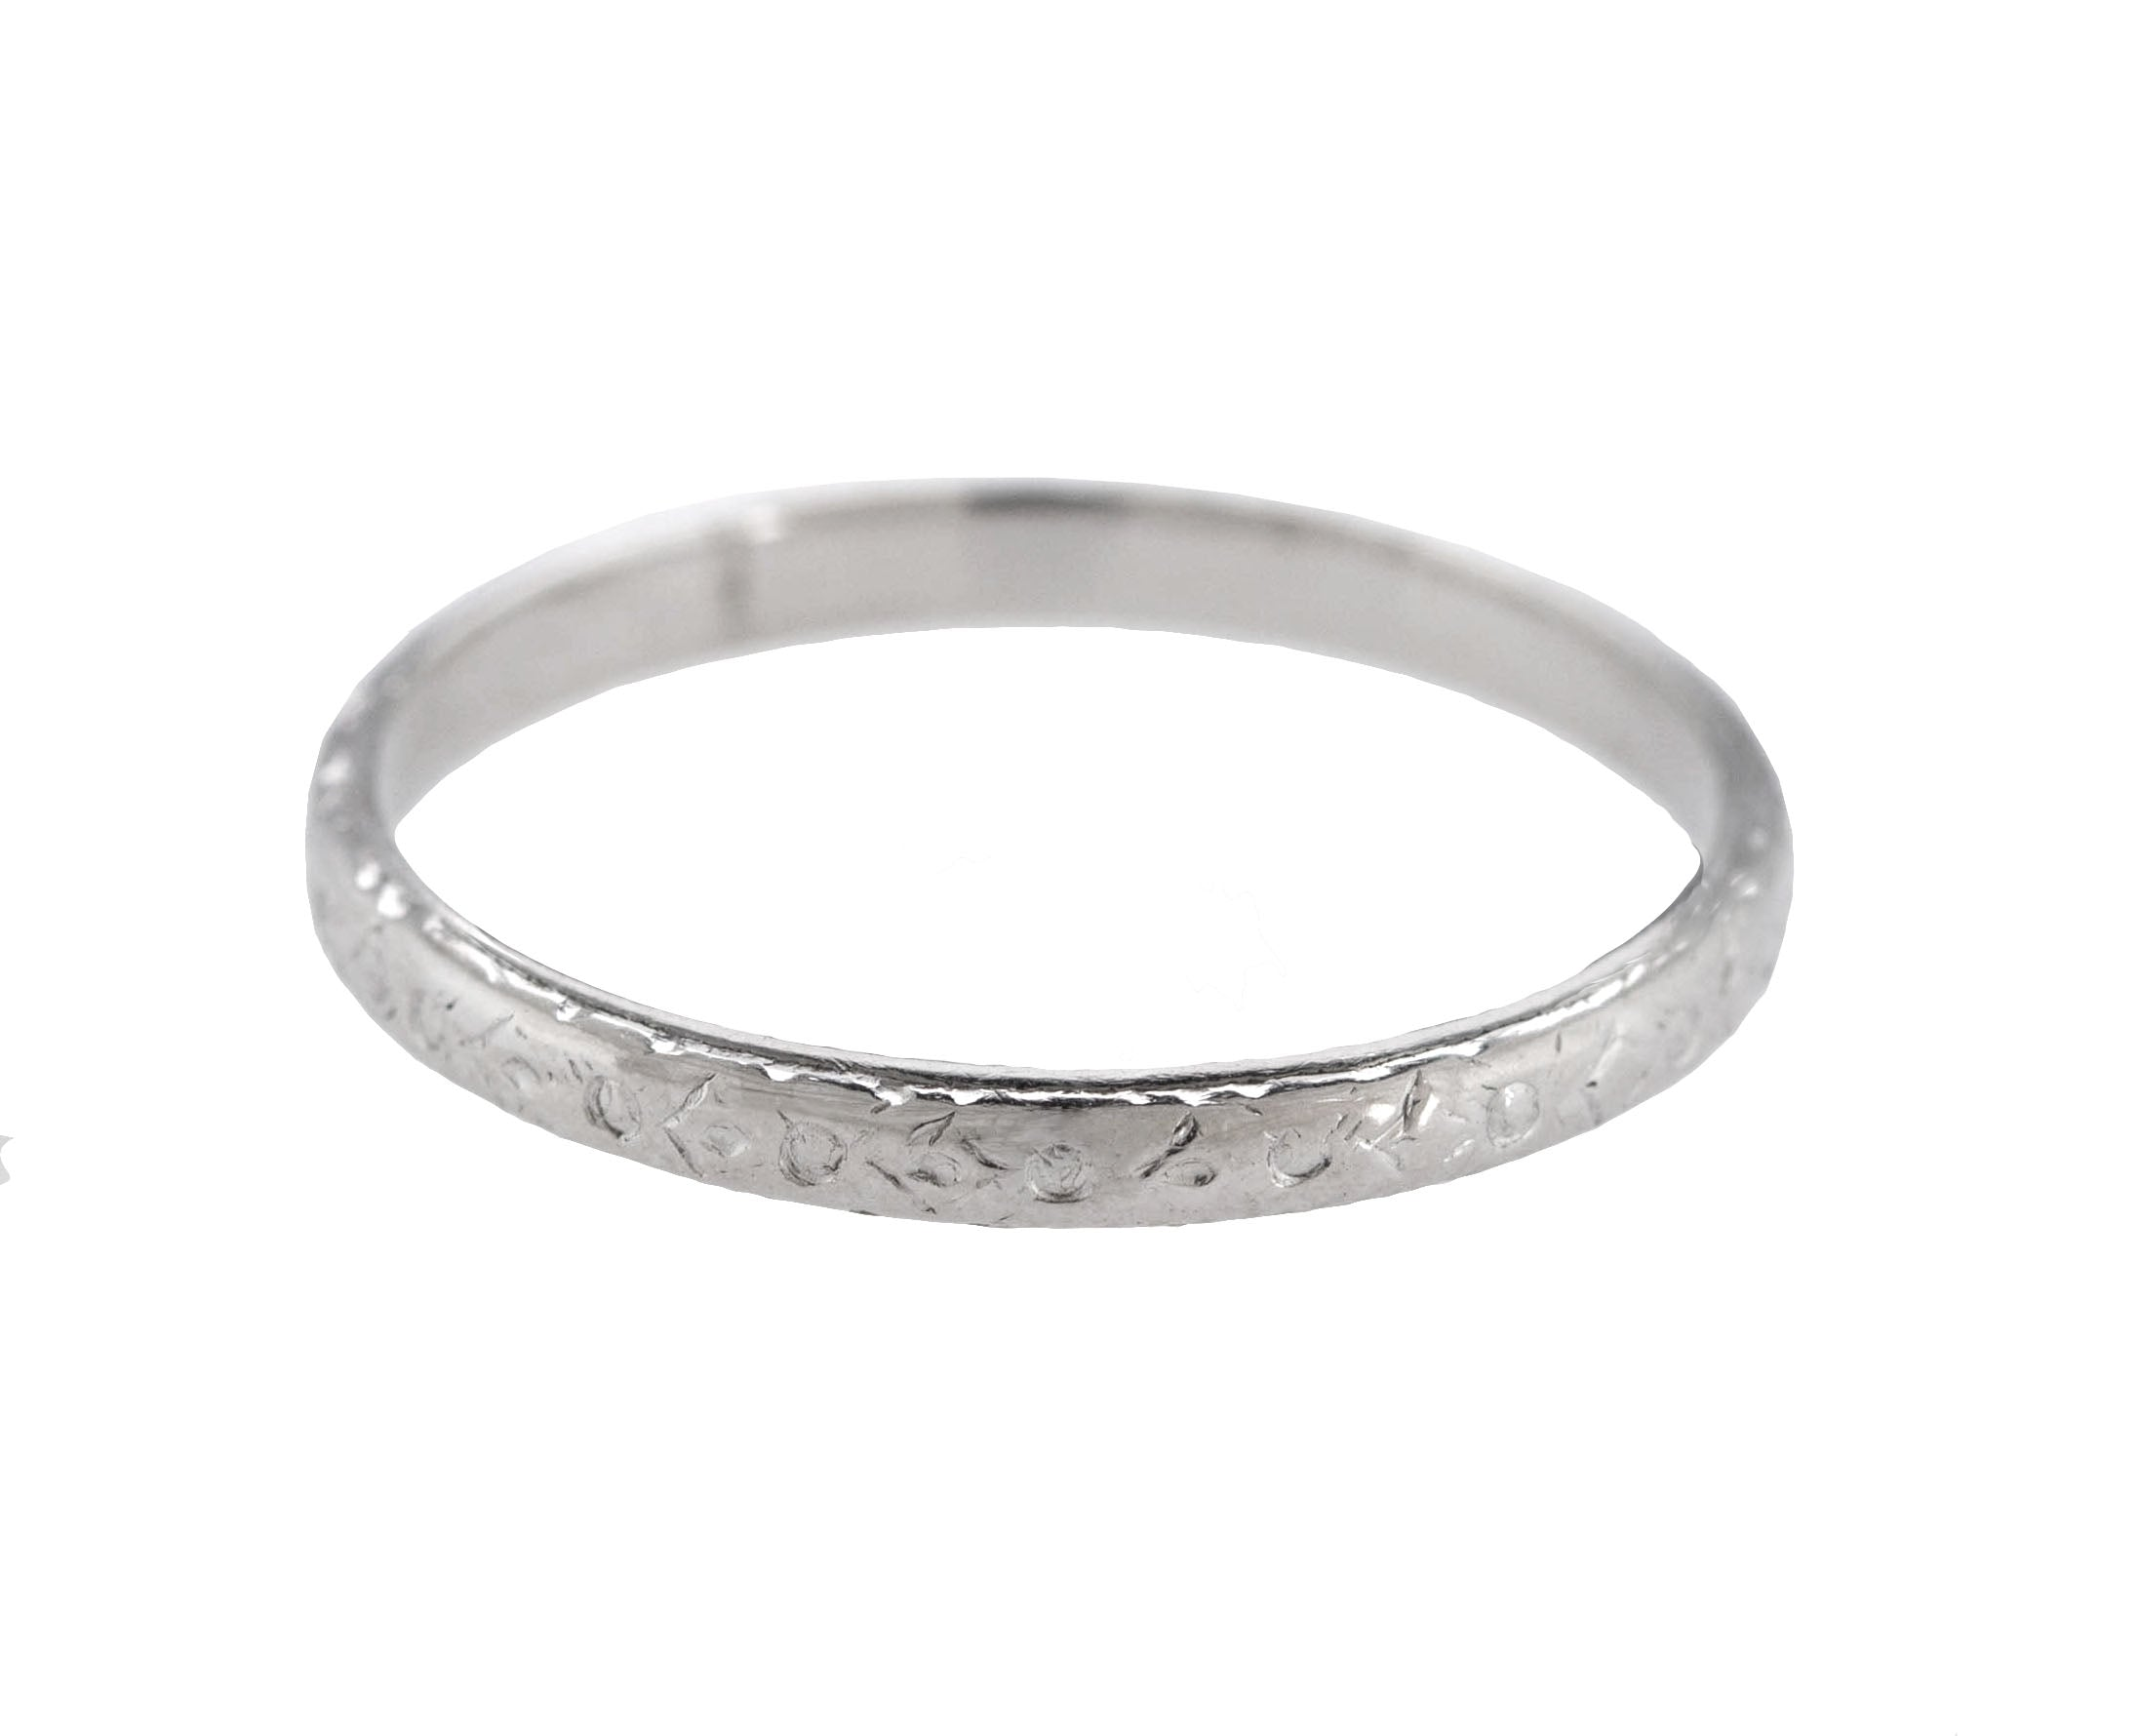 1930's Antique Art Deco Platinum 2mm Etched Stackable Eternity Band Ring